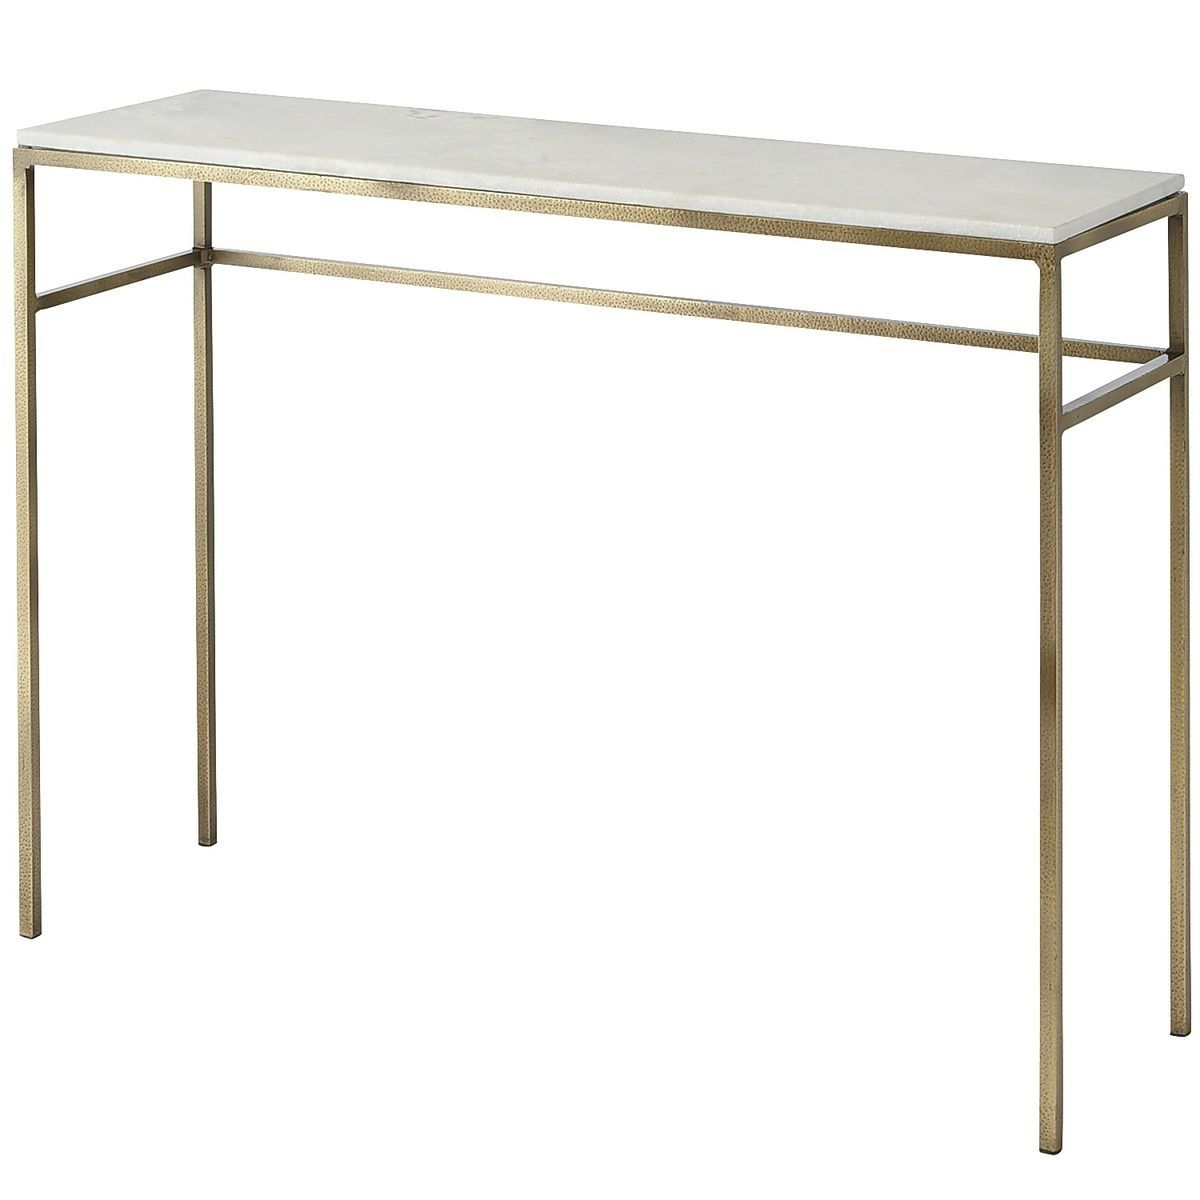 If You're Looking For A Way To Elevate Your Living Space, Ethel Pertaining To Elke Glass Console Tables With Polished Aluminum Base (View 10 of 20)